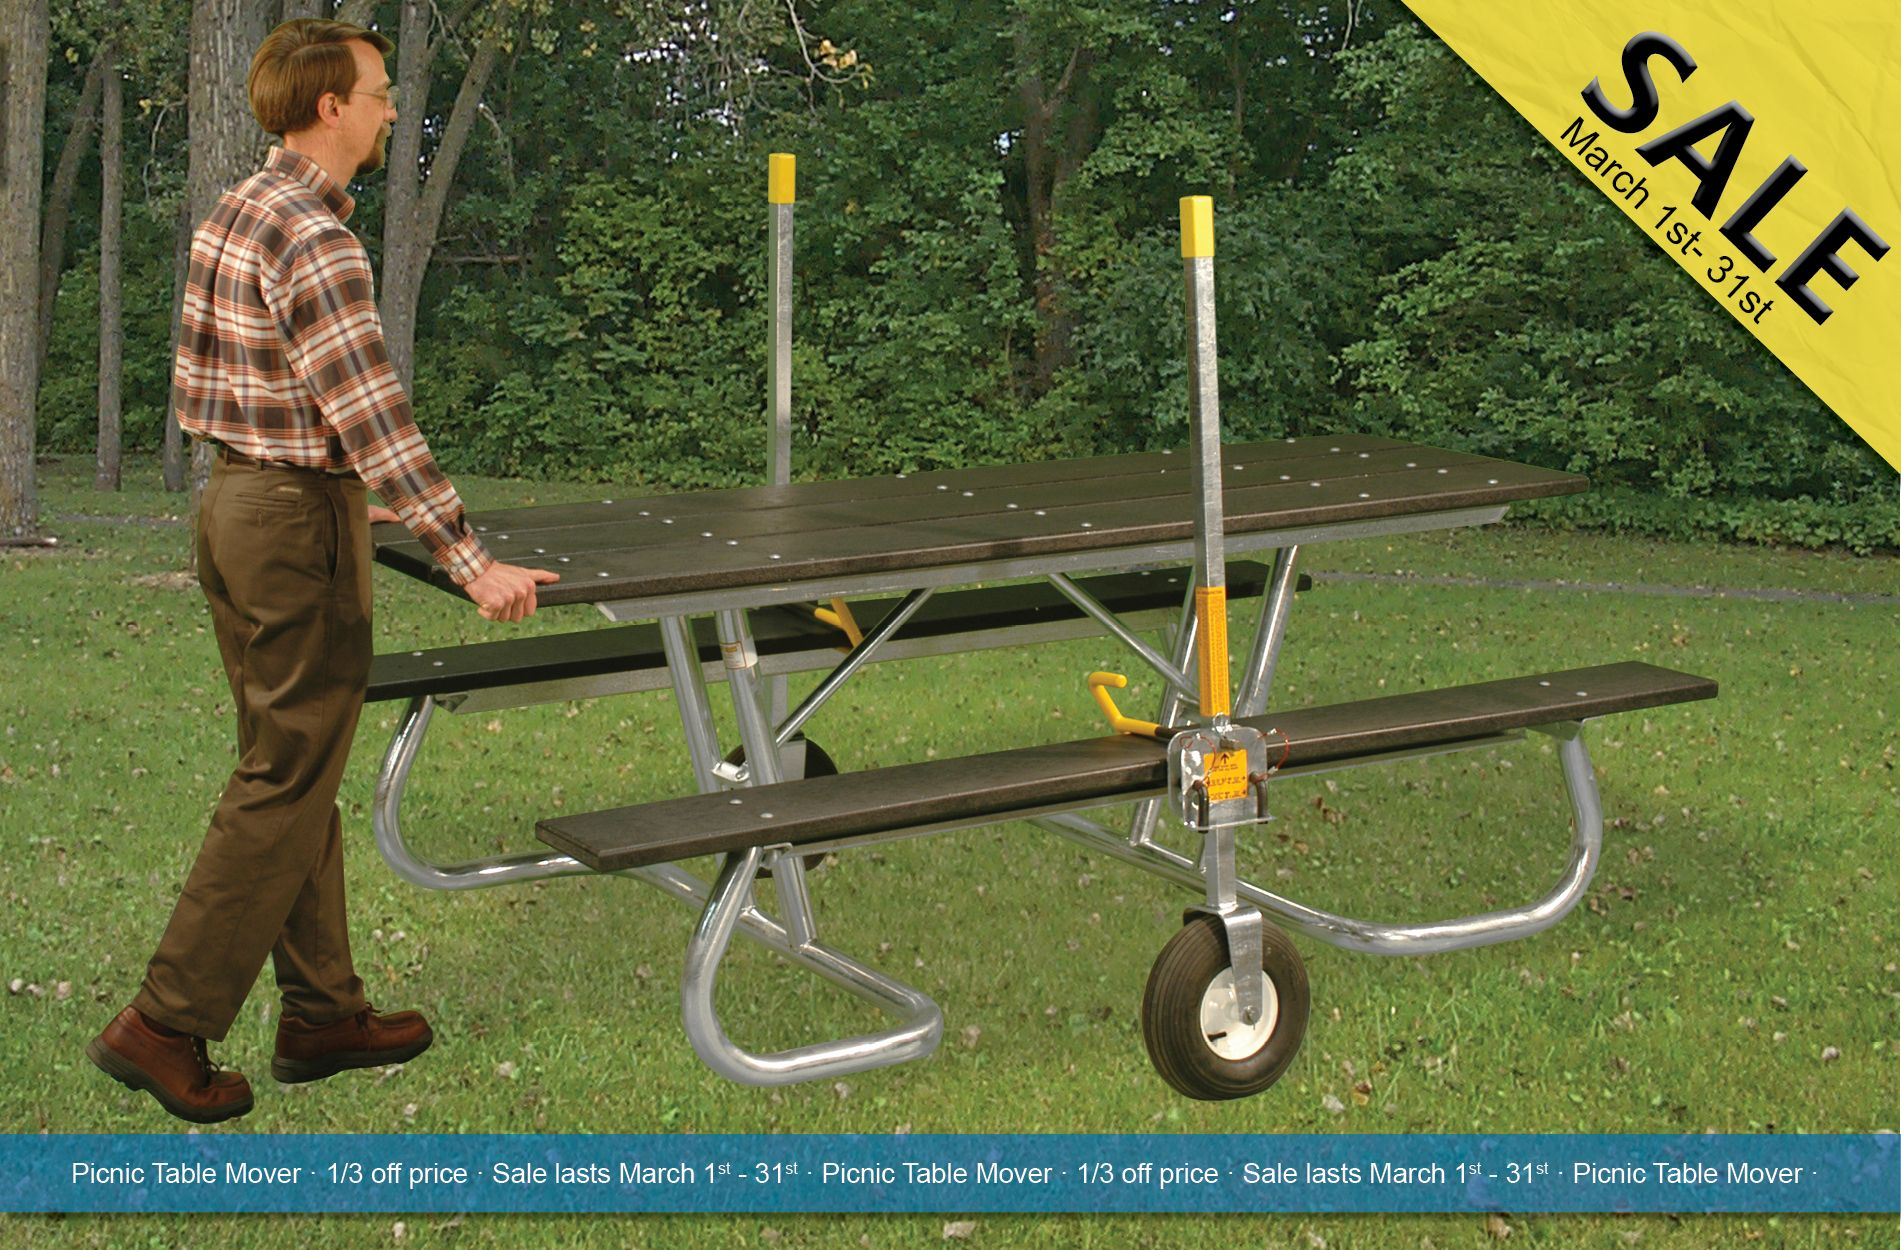 The Picnic Table Mover Can Carry Up To Lbs Of Table Weight And - Picnic table mover